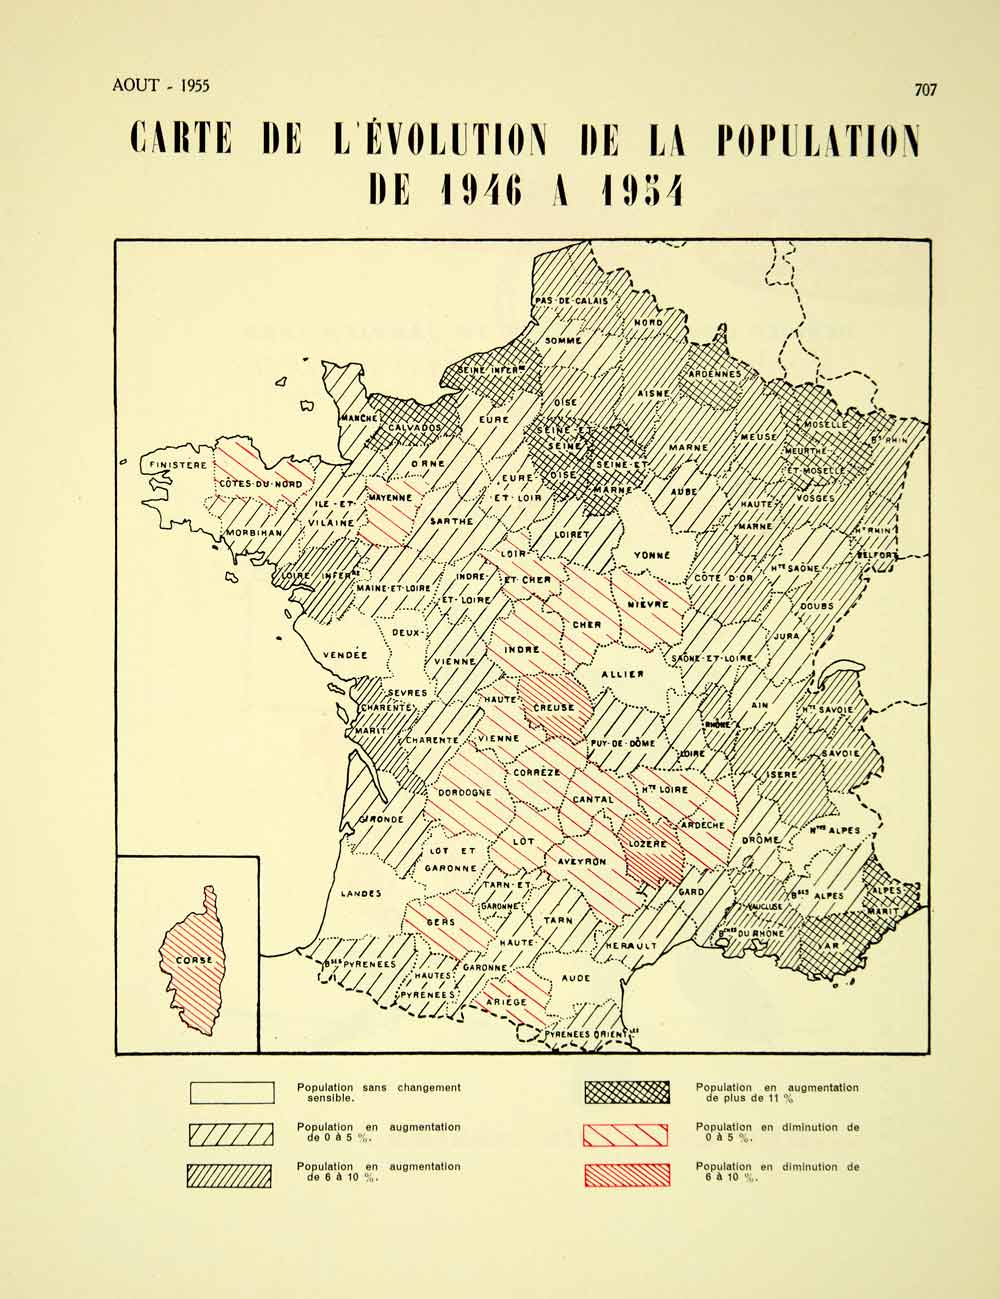 Map Of France Departments.1955 Vintage Map France Population Change 1946 1954 Departments Demography Vena4